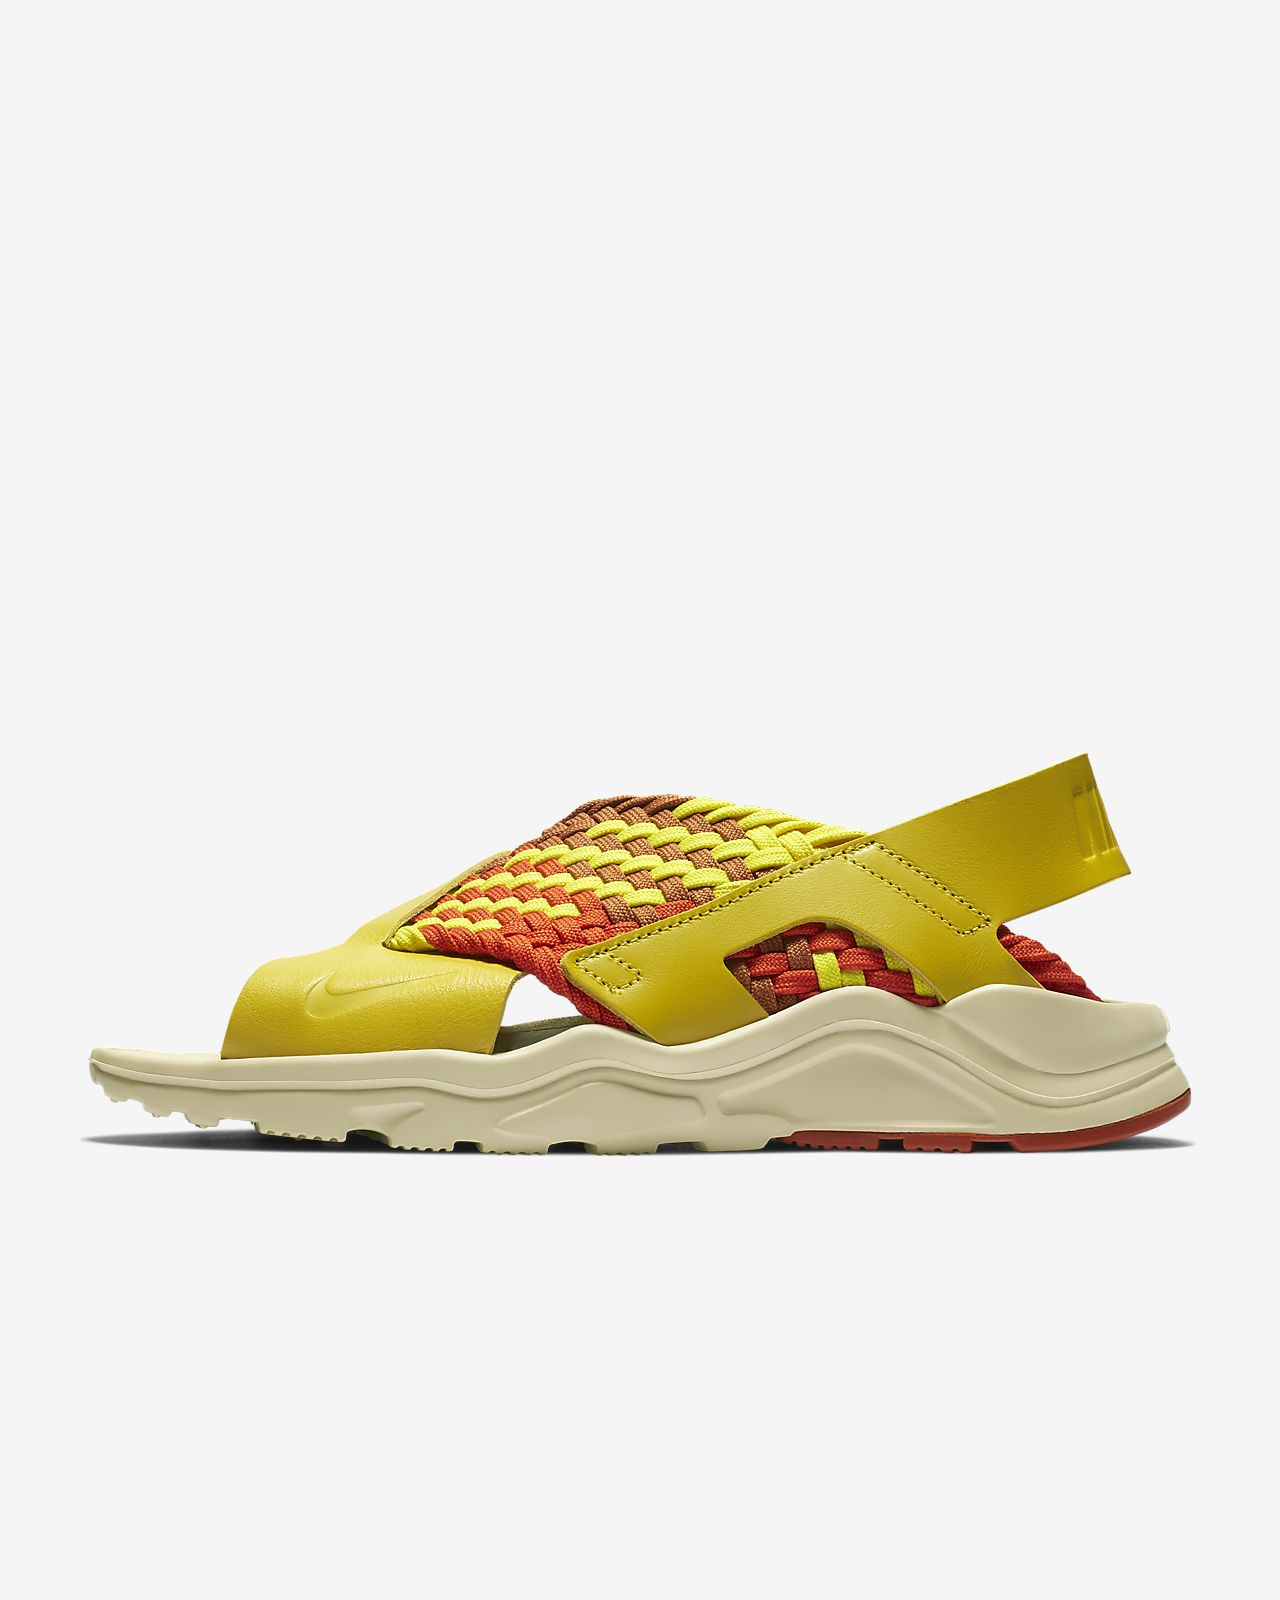 Nike Air Huarache Ultra Womens Sandal